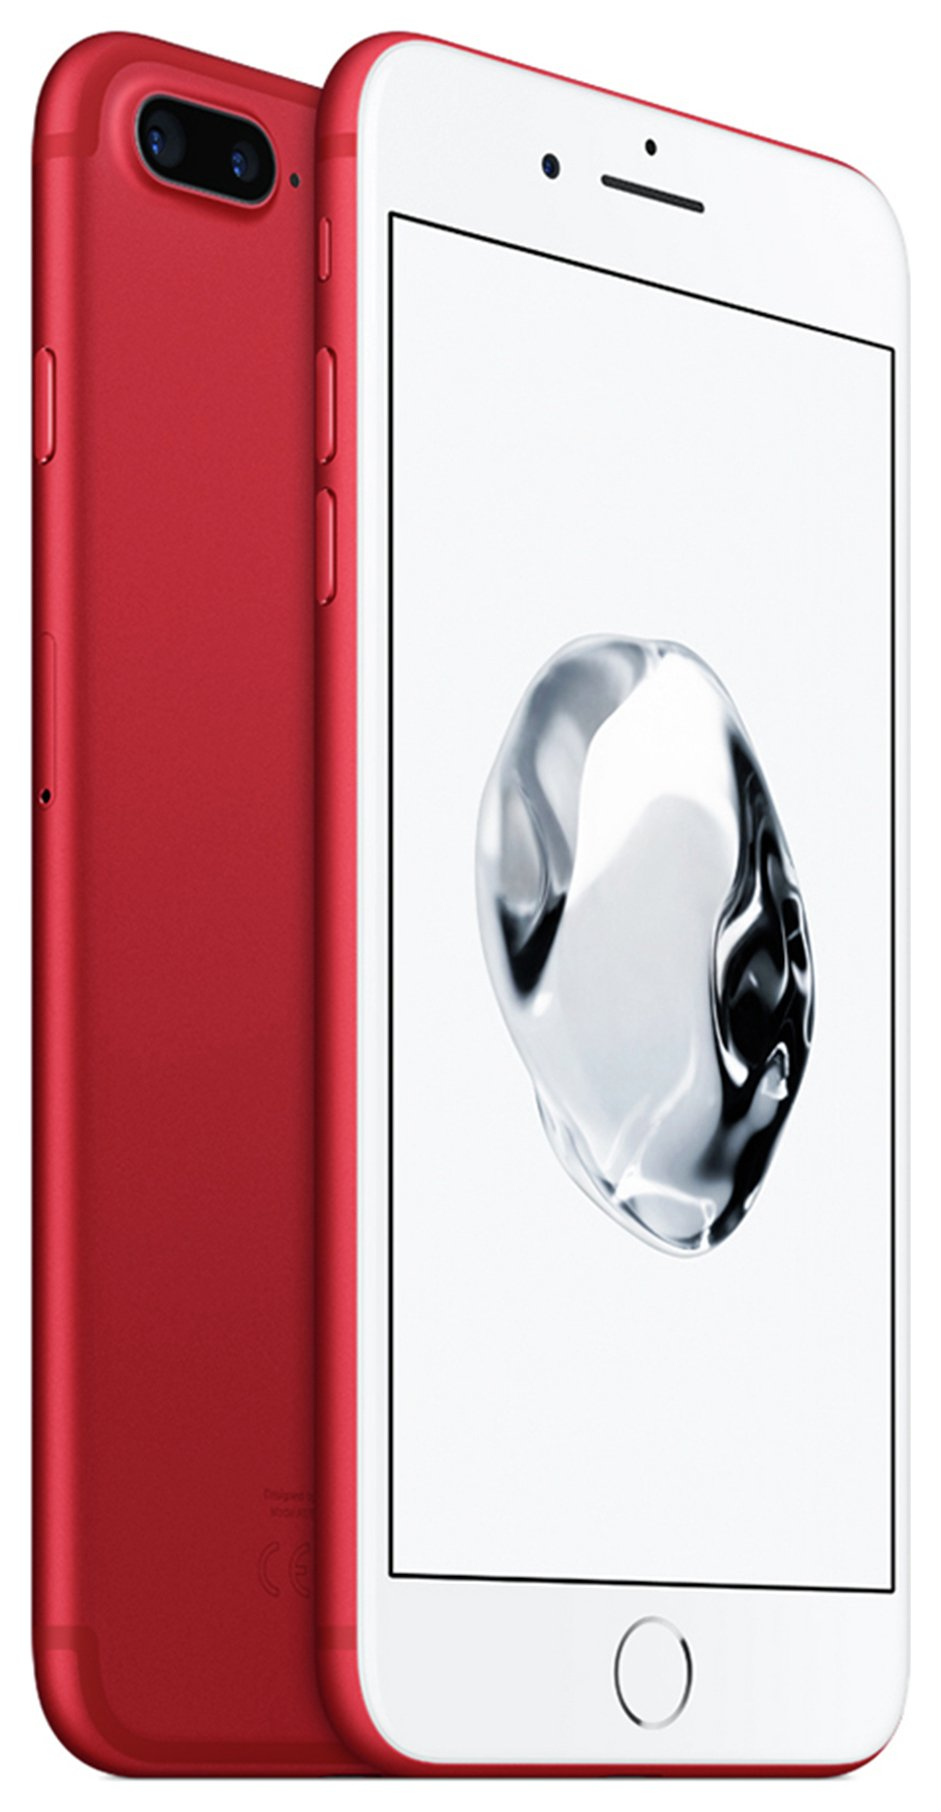 Apple Sim Free iPhone 7 Plus 128GB Mobile Phone - (PRODUCT)RED.